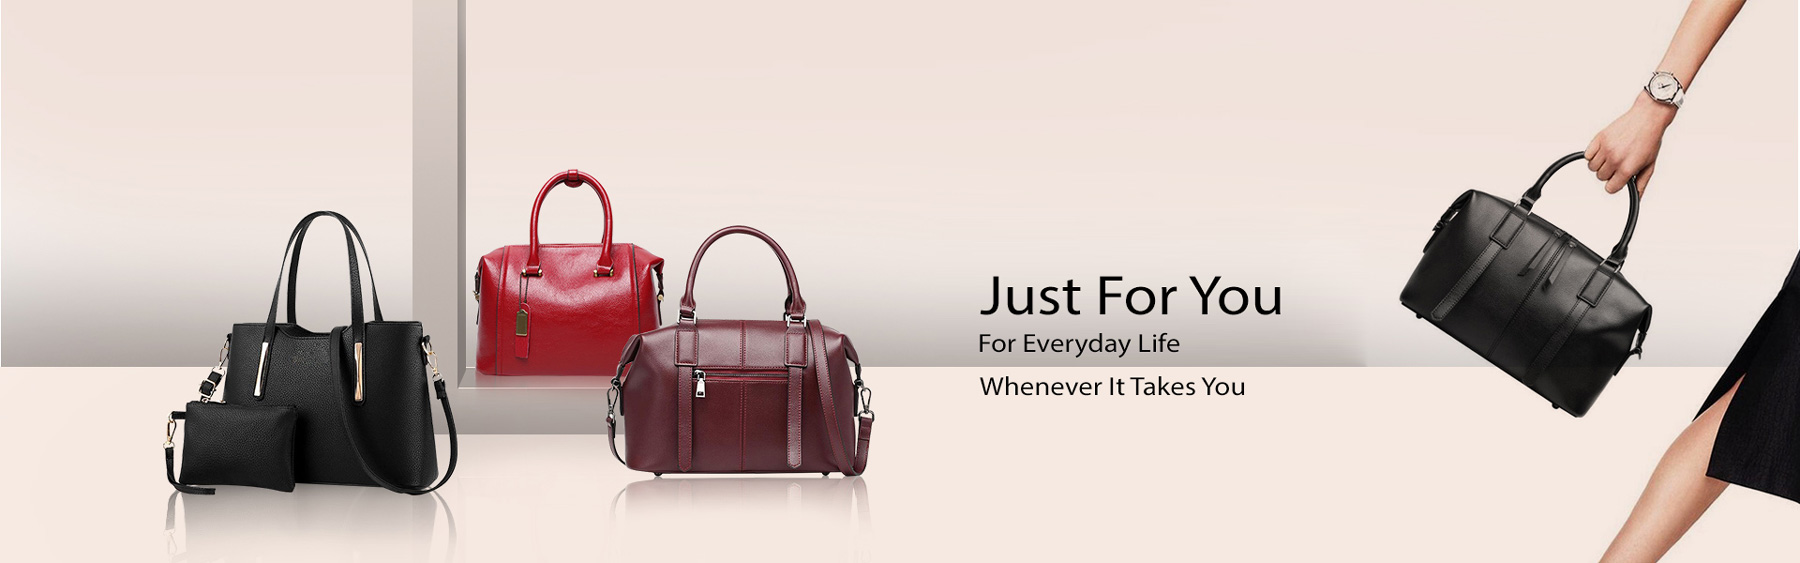 Luggage, Backpacks, Carry-Ons, Briefcases, Bags & More, Saab Company Lebanon - Slider